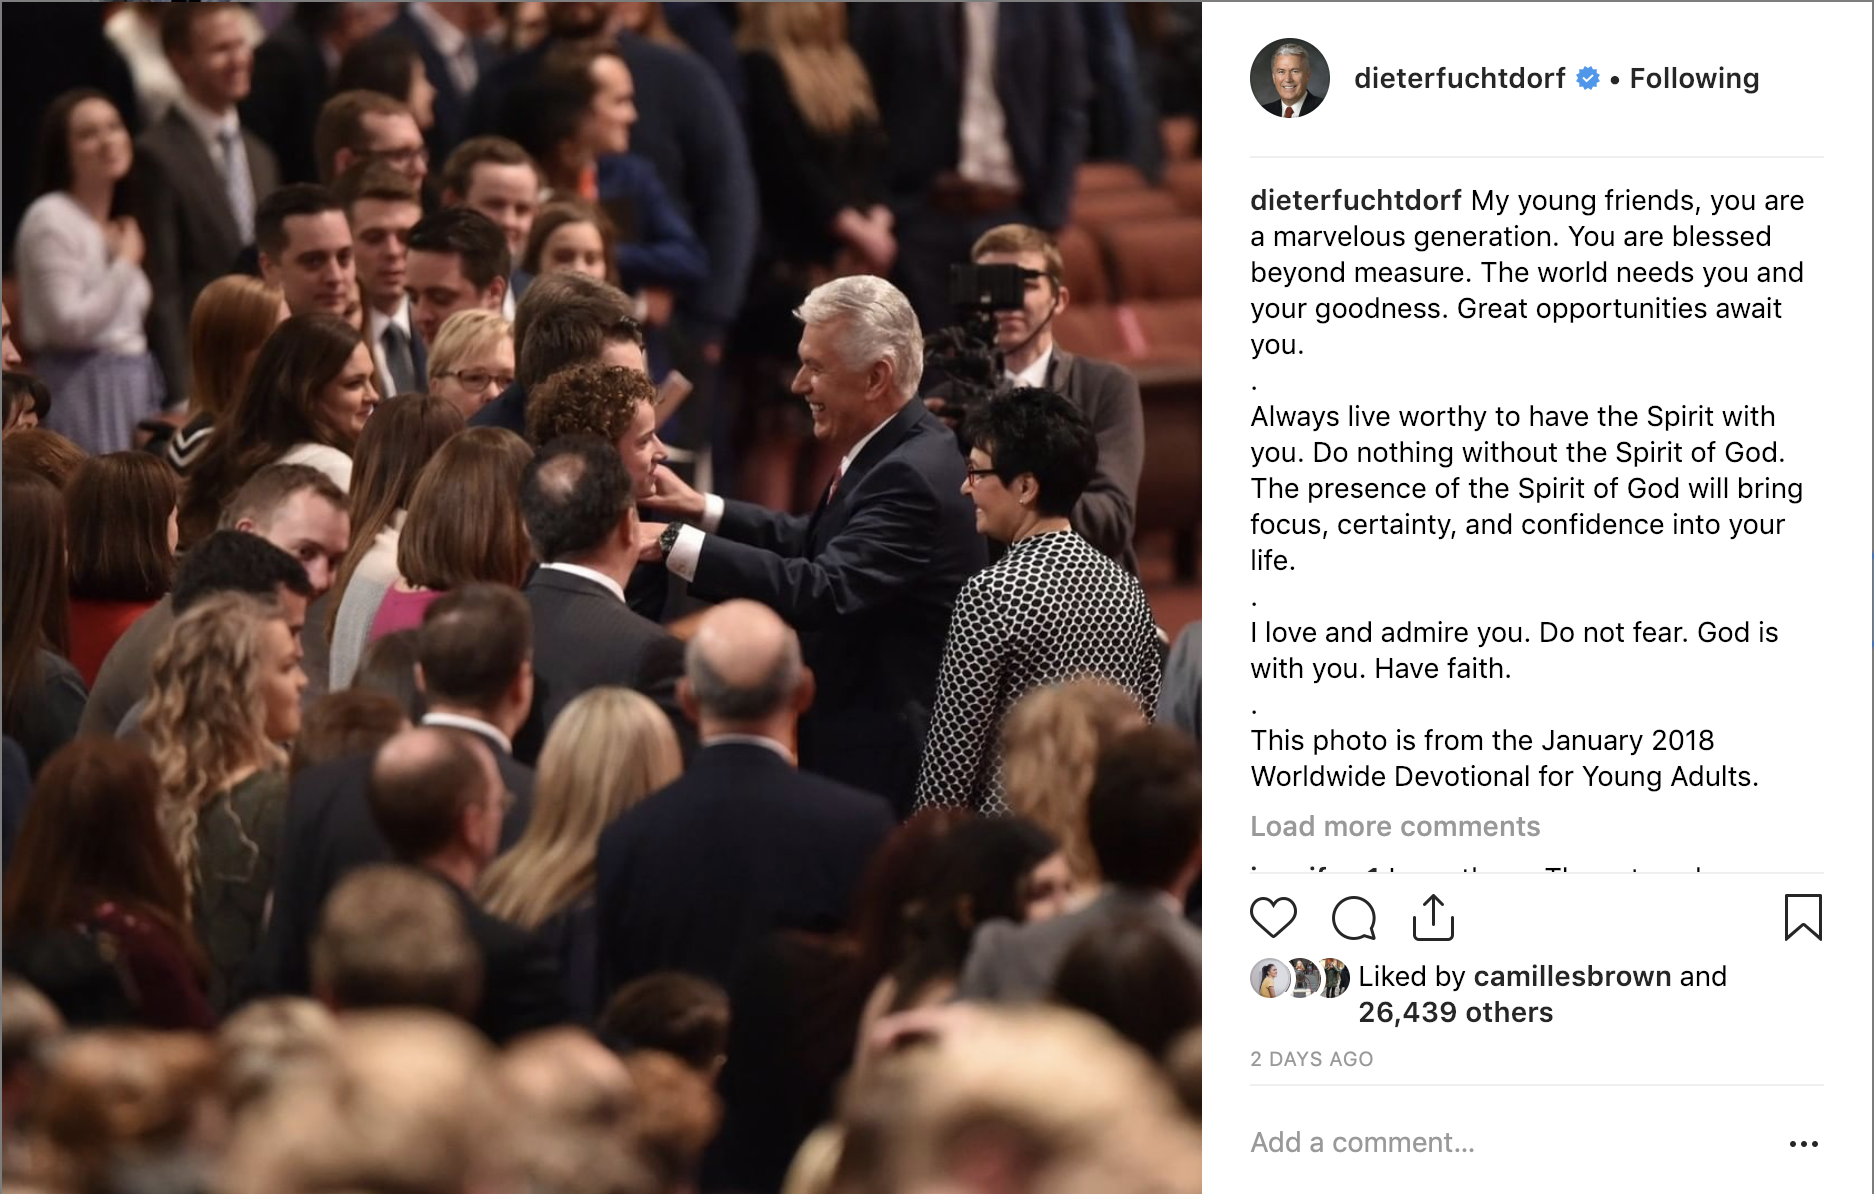 Elder Dieter F. Uchtdorf reminded young adults that the world needs their goodness.